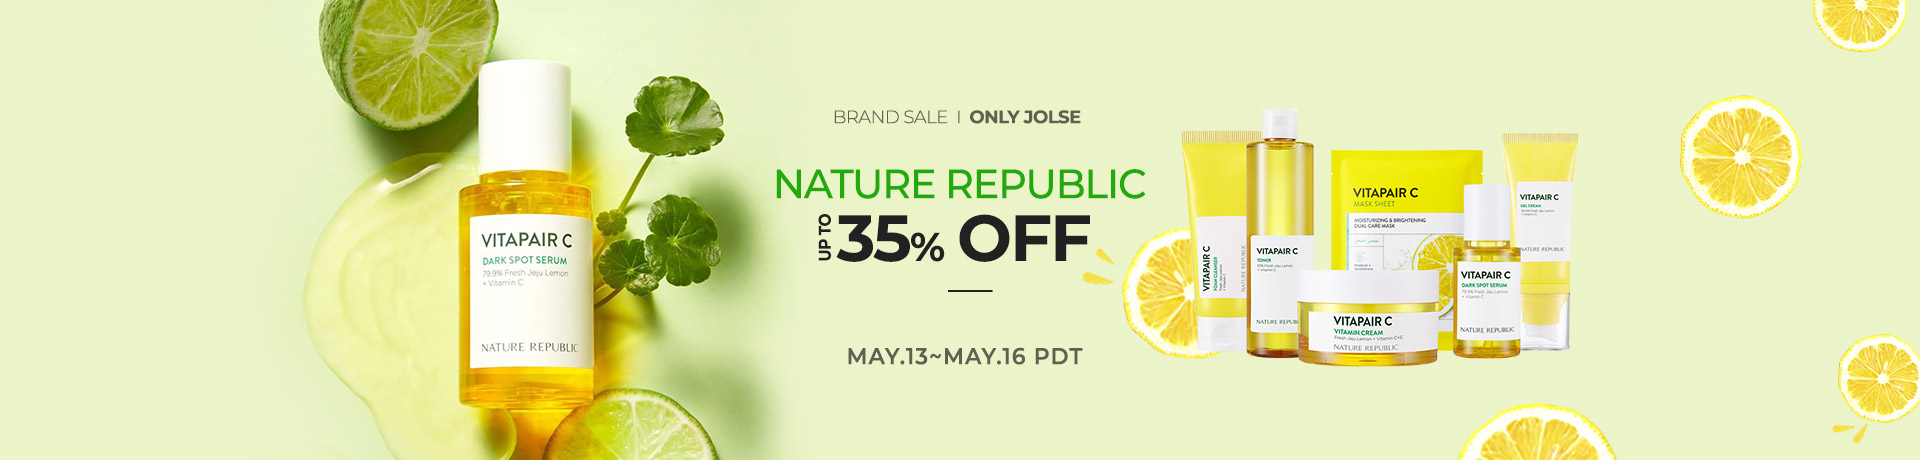 Nature Republic Up to 35% OFF